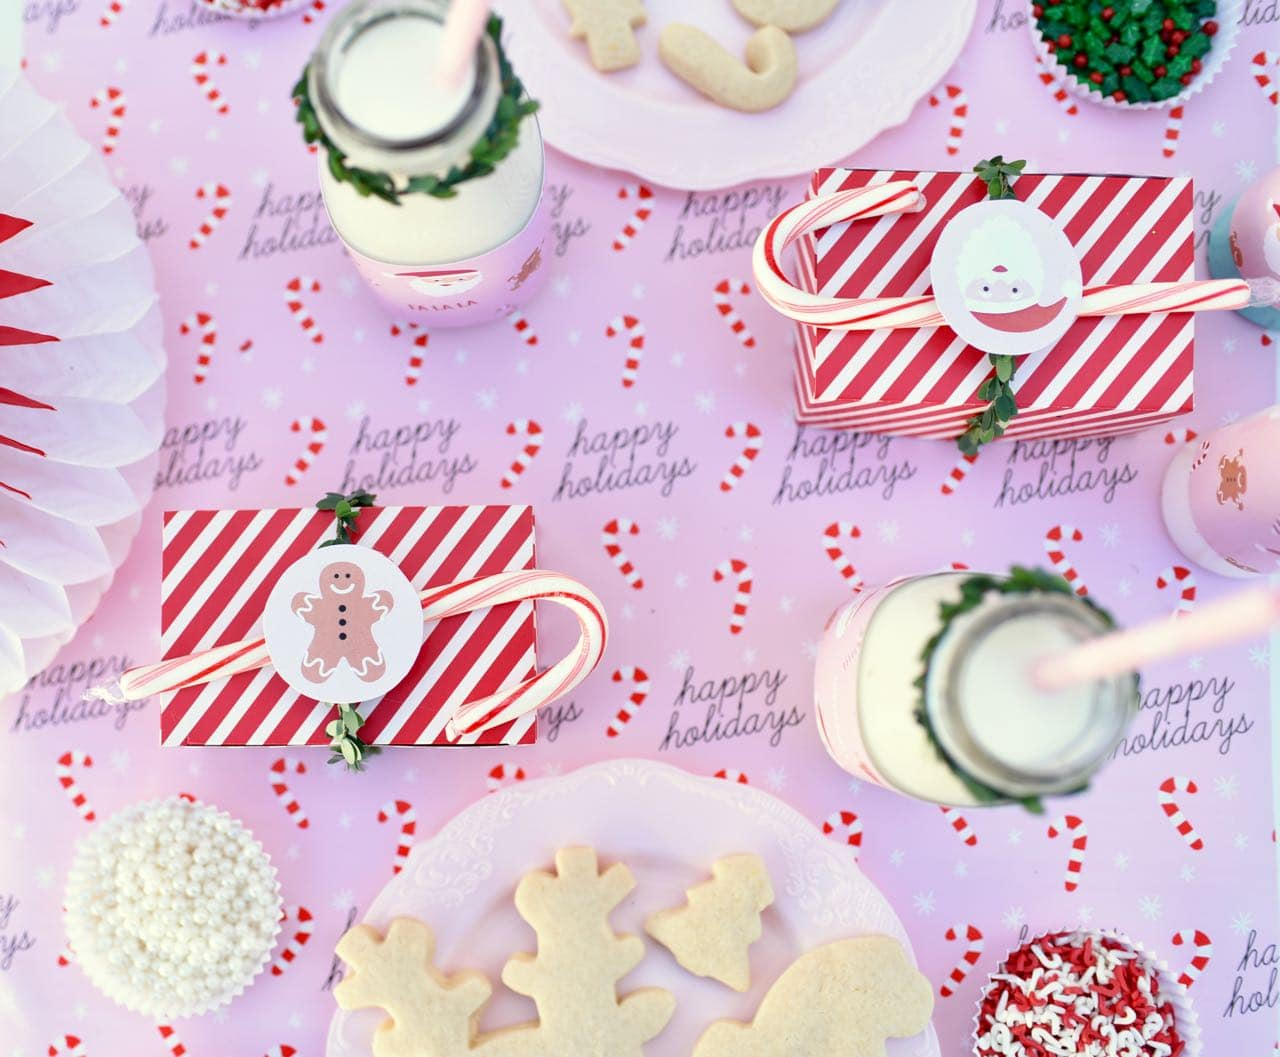 Christmas Cookie Decorating Ideas.How To Plan The Ultimate Christmas Cookie Decorating Party